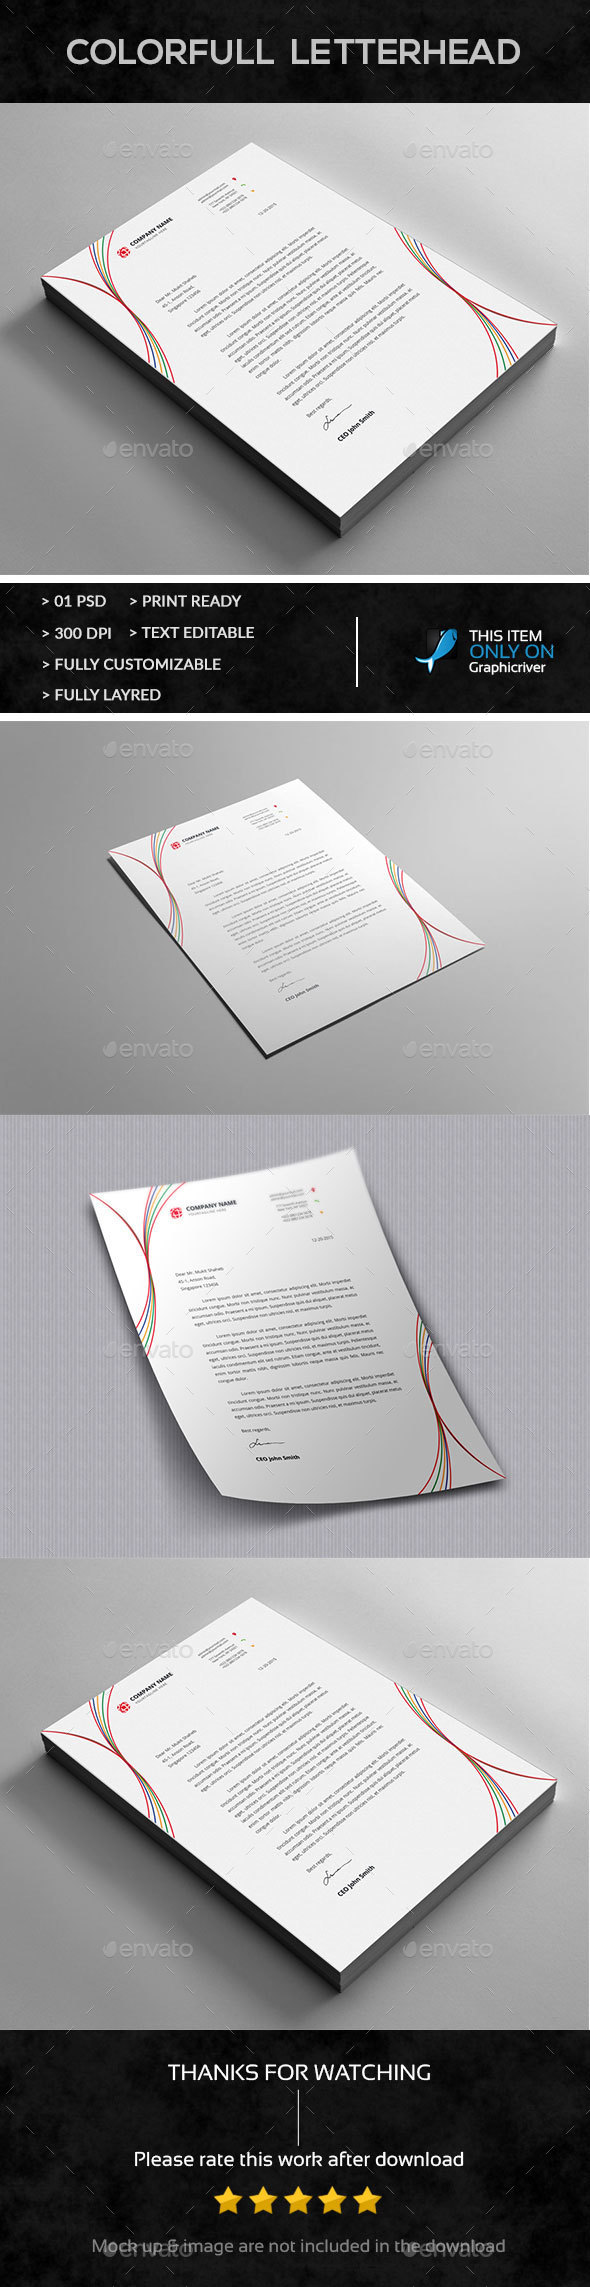 Simple Letterhead Design - Stationery Print Templates